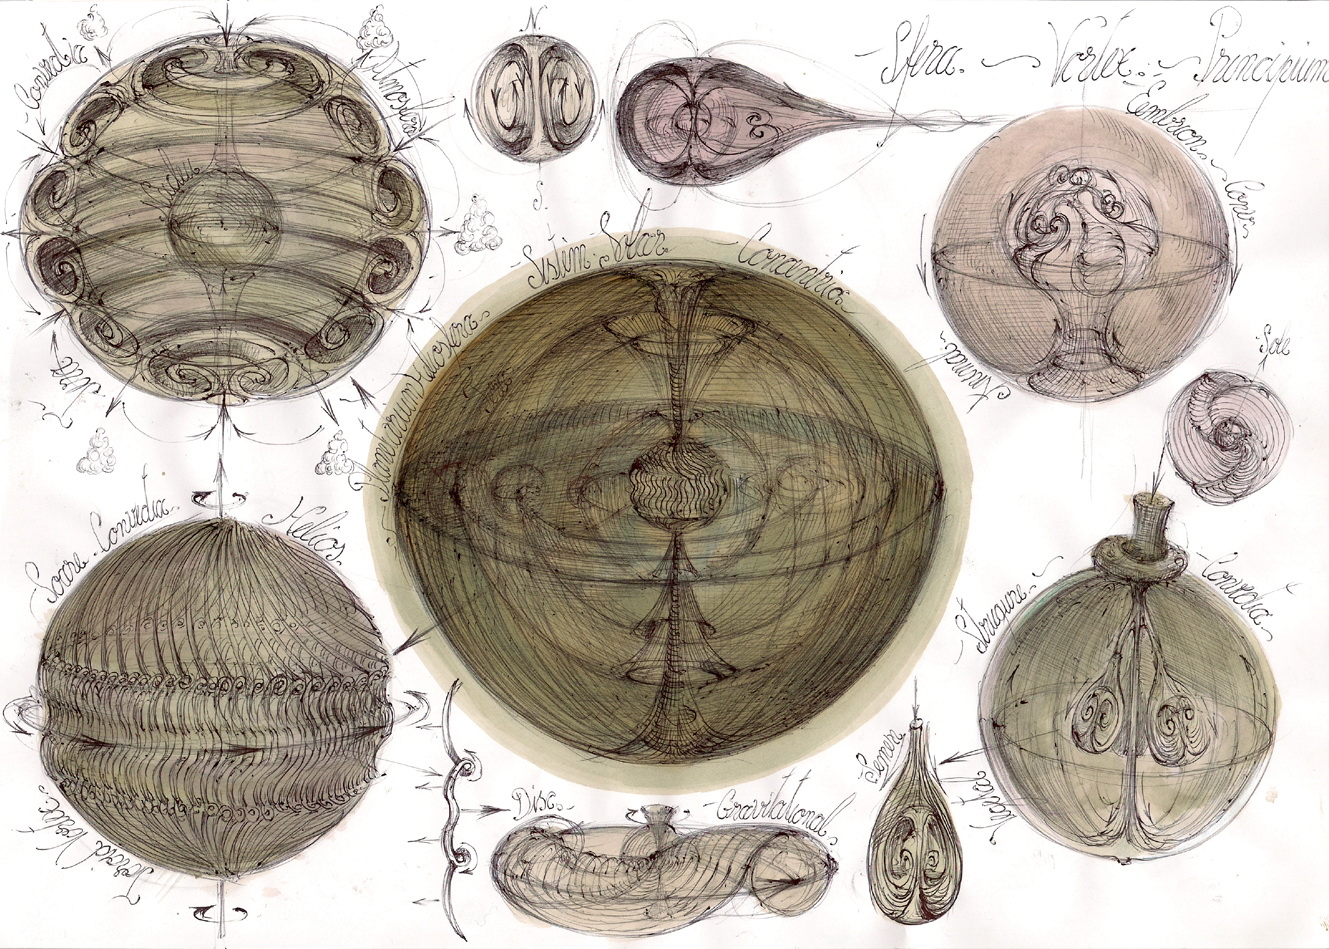 Gabriel Kelemen, Universal Sphere-Vortex Principium Theory, 2 Solar system illustrating the unity of thermal and biological convection.